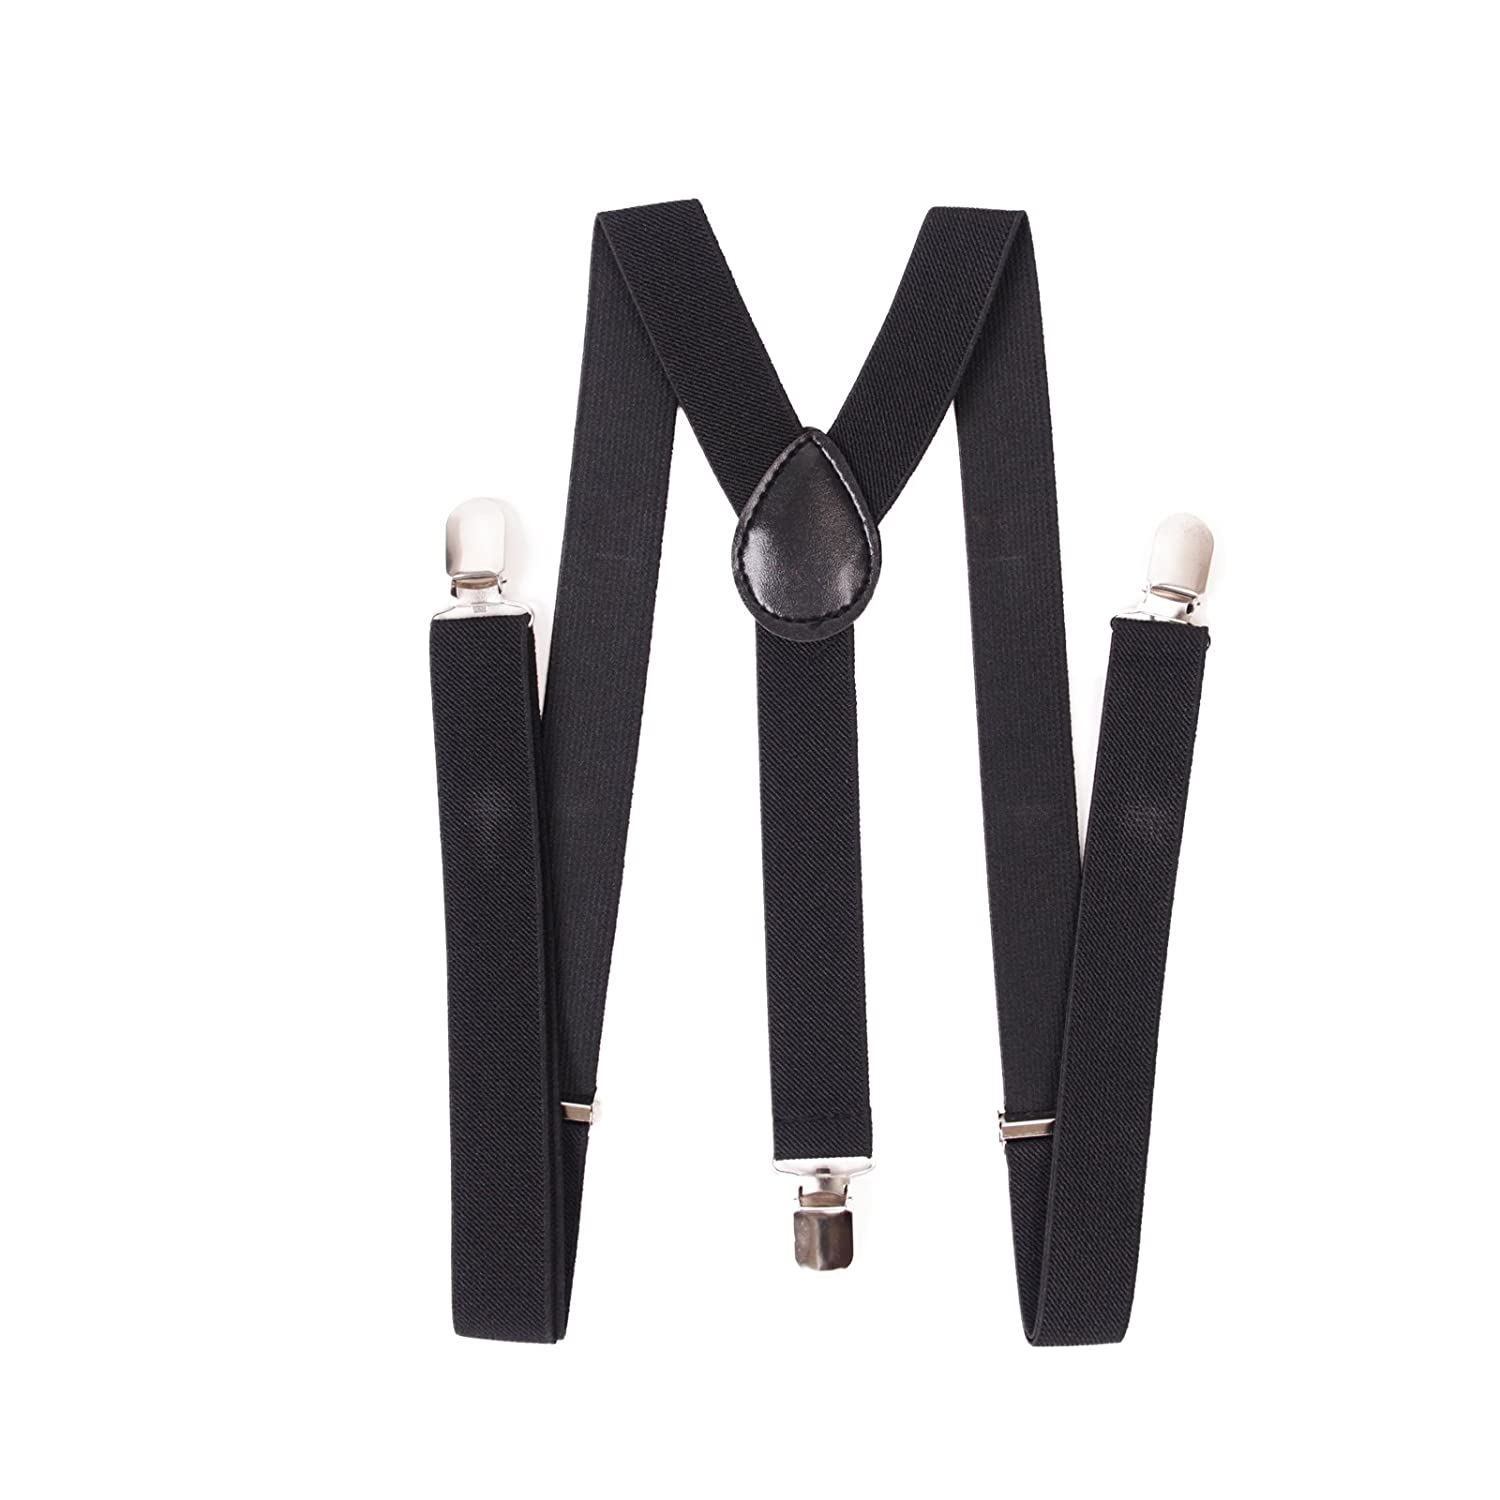 SG/_B00GZZM2FK/_US AJ Accessories Youth Boys Solid Adjustable Nylon Suspenders Black